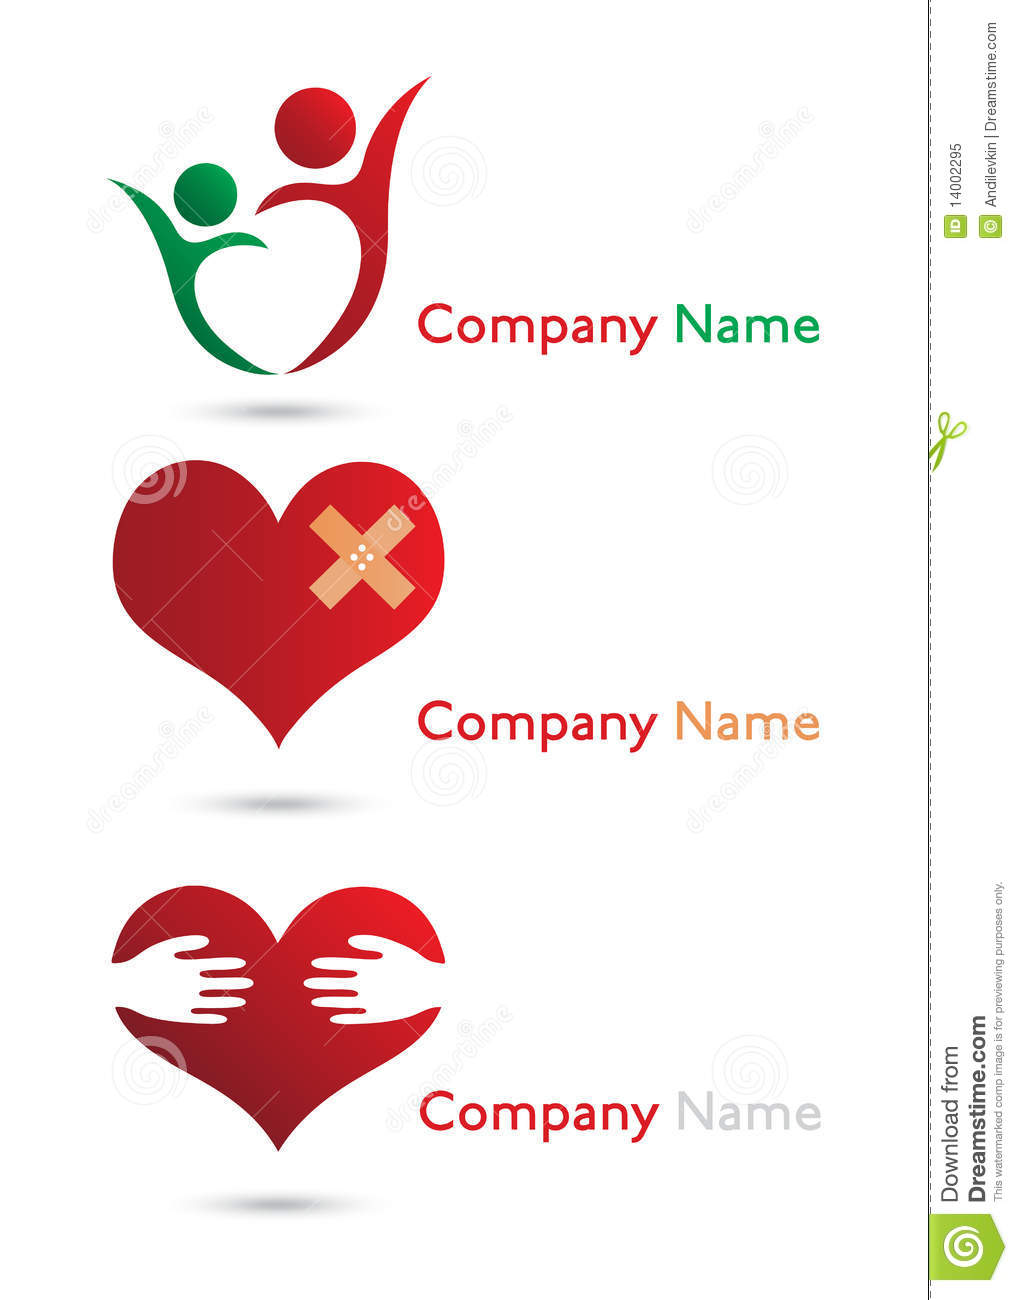 Health Care Logos Royalty Free Stock Photo - Image: 14002295